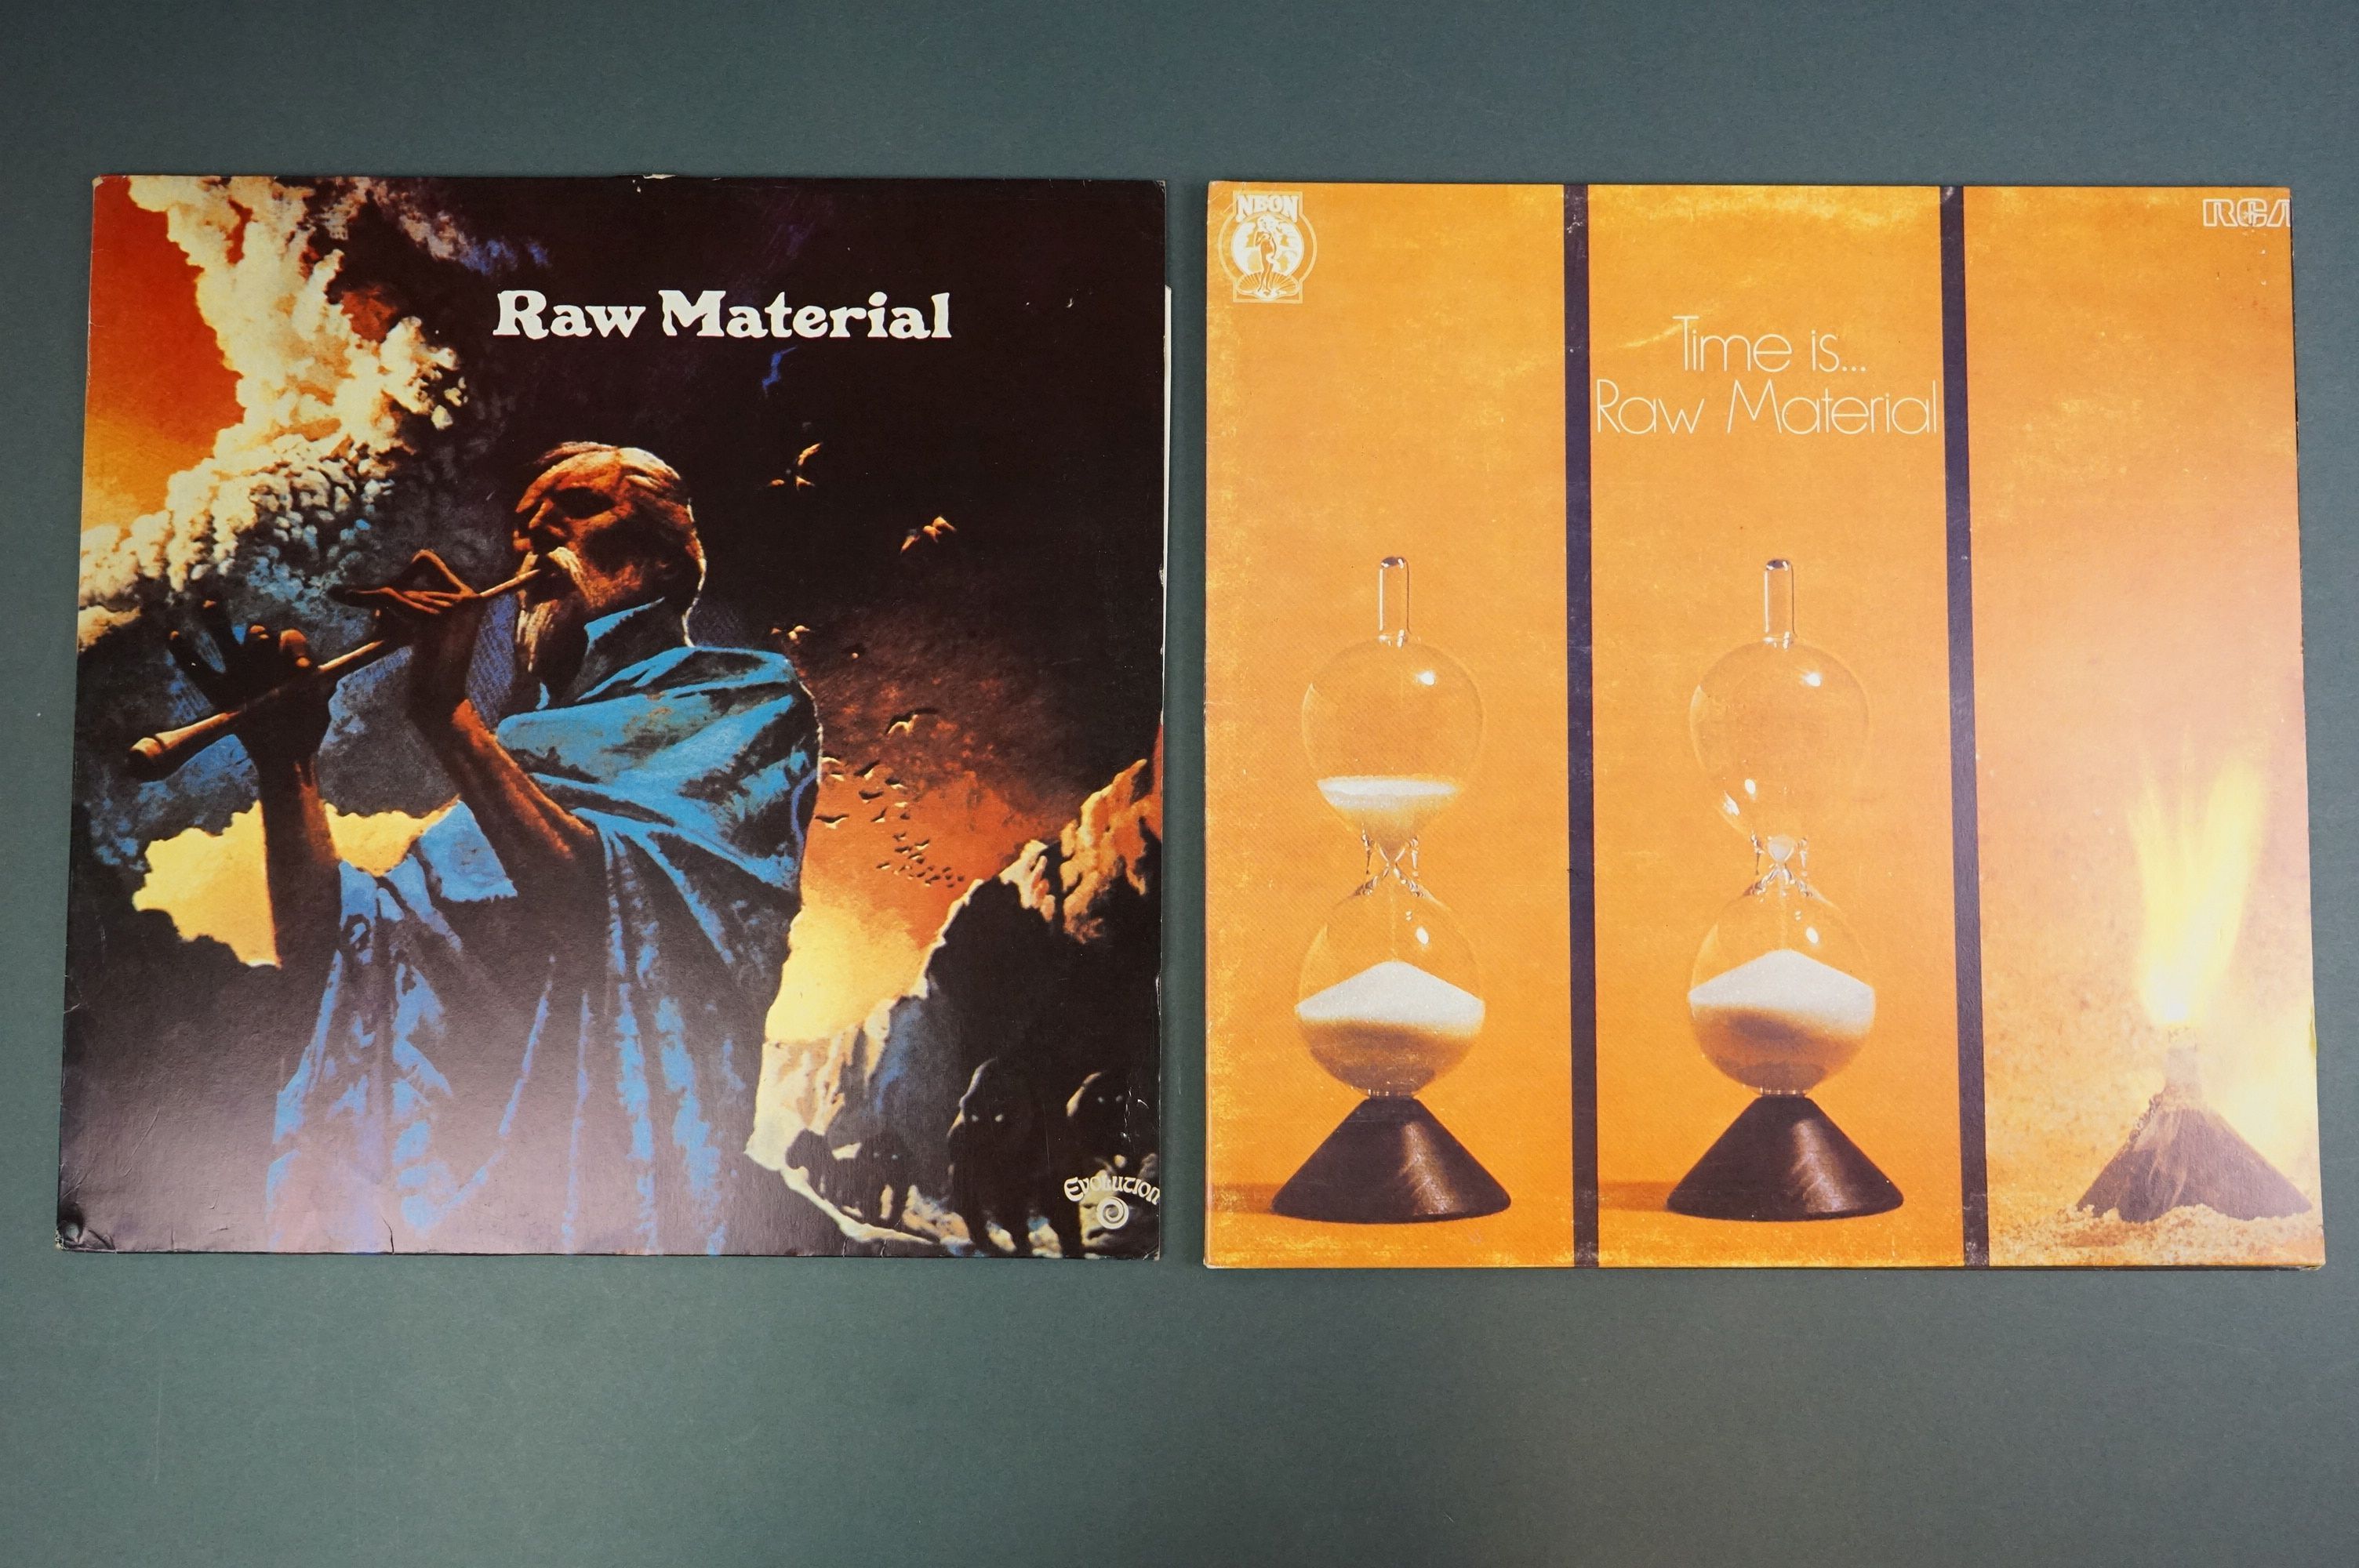 Vinyl - Two unofficial Raw Materials release LPs to include Time Is (NE8) and self titled (Z1006),